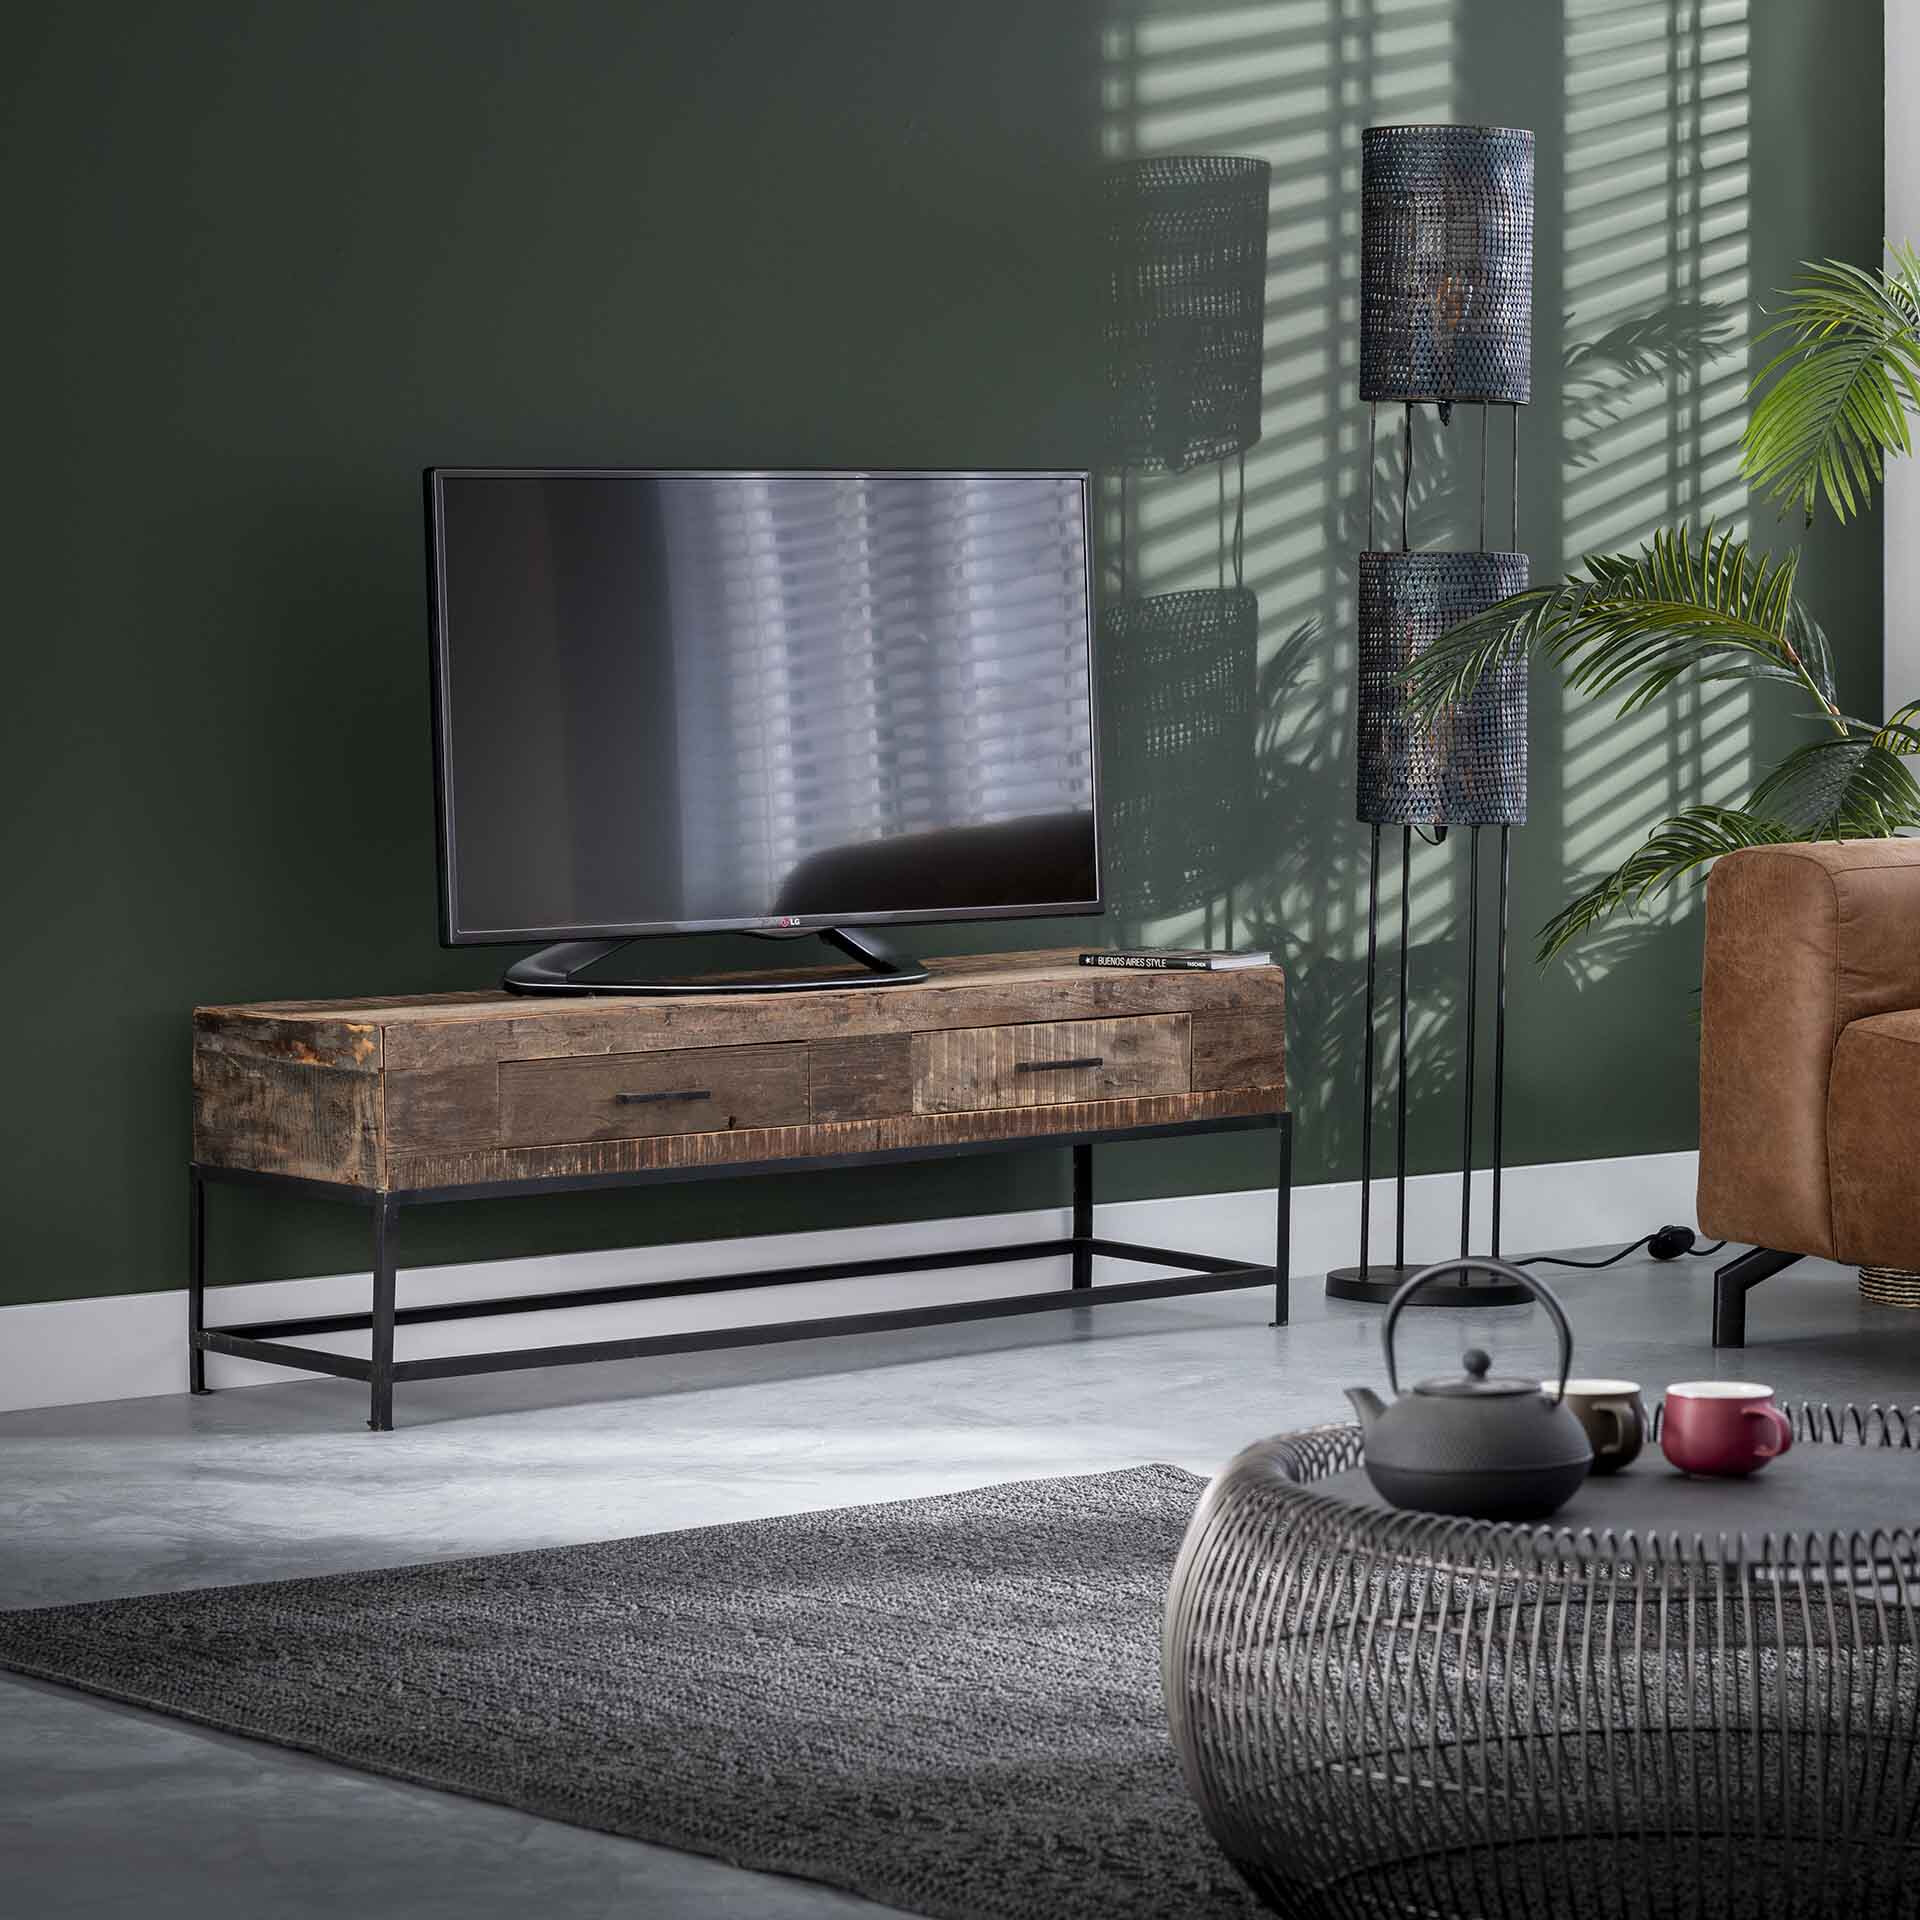 TV-meubel 'Lodge' 135cm, met 2 laden | LifestyleFurn